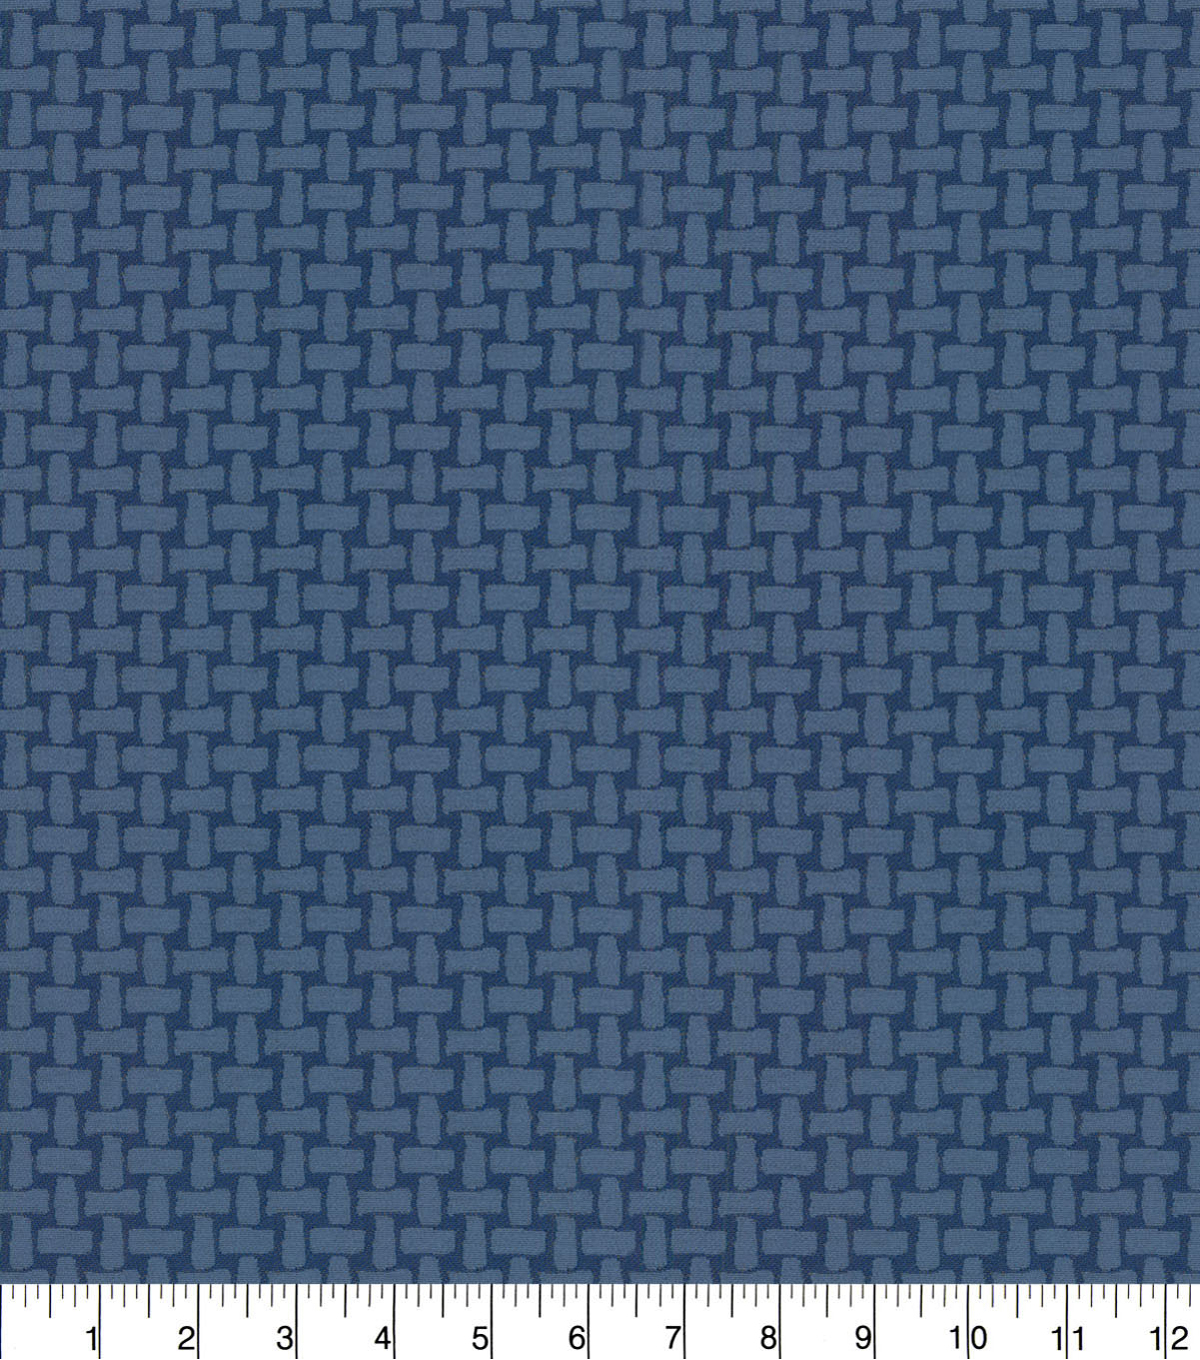 Kelly Ripa Home Upholstery Décor Fabric 9\u0022x9\u0022 Swatch-On Cue Bluebell